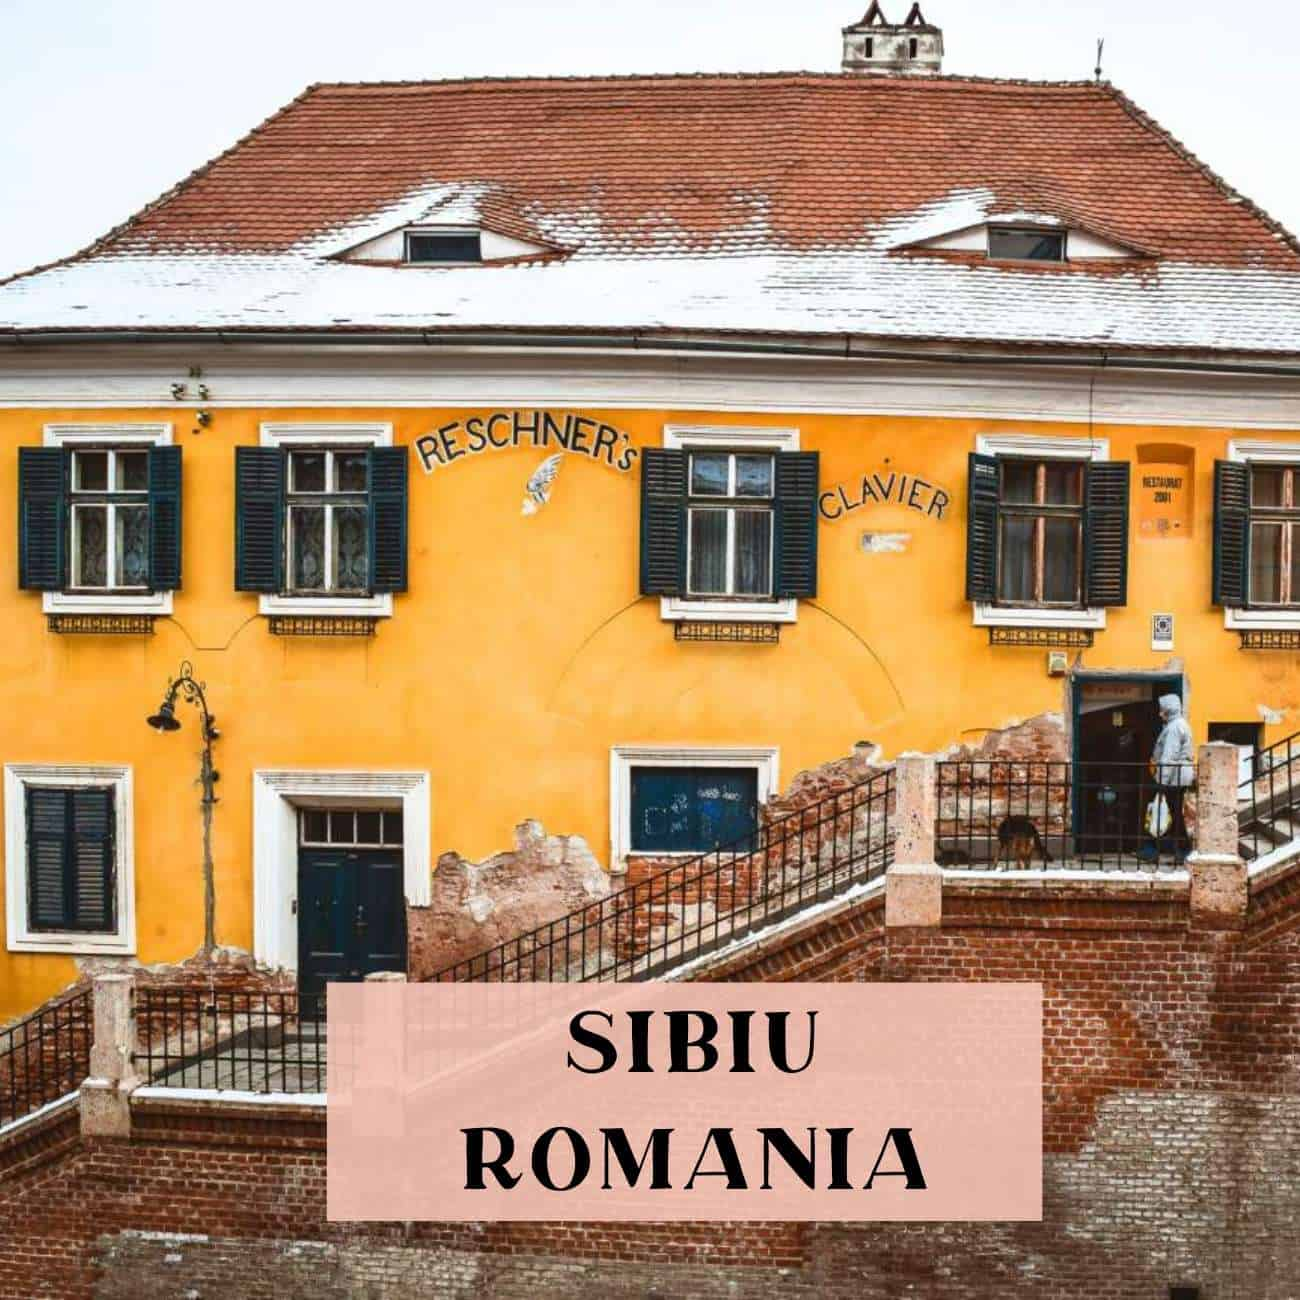 Sibiu Romania 3-day itinerary